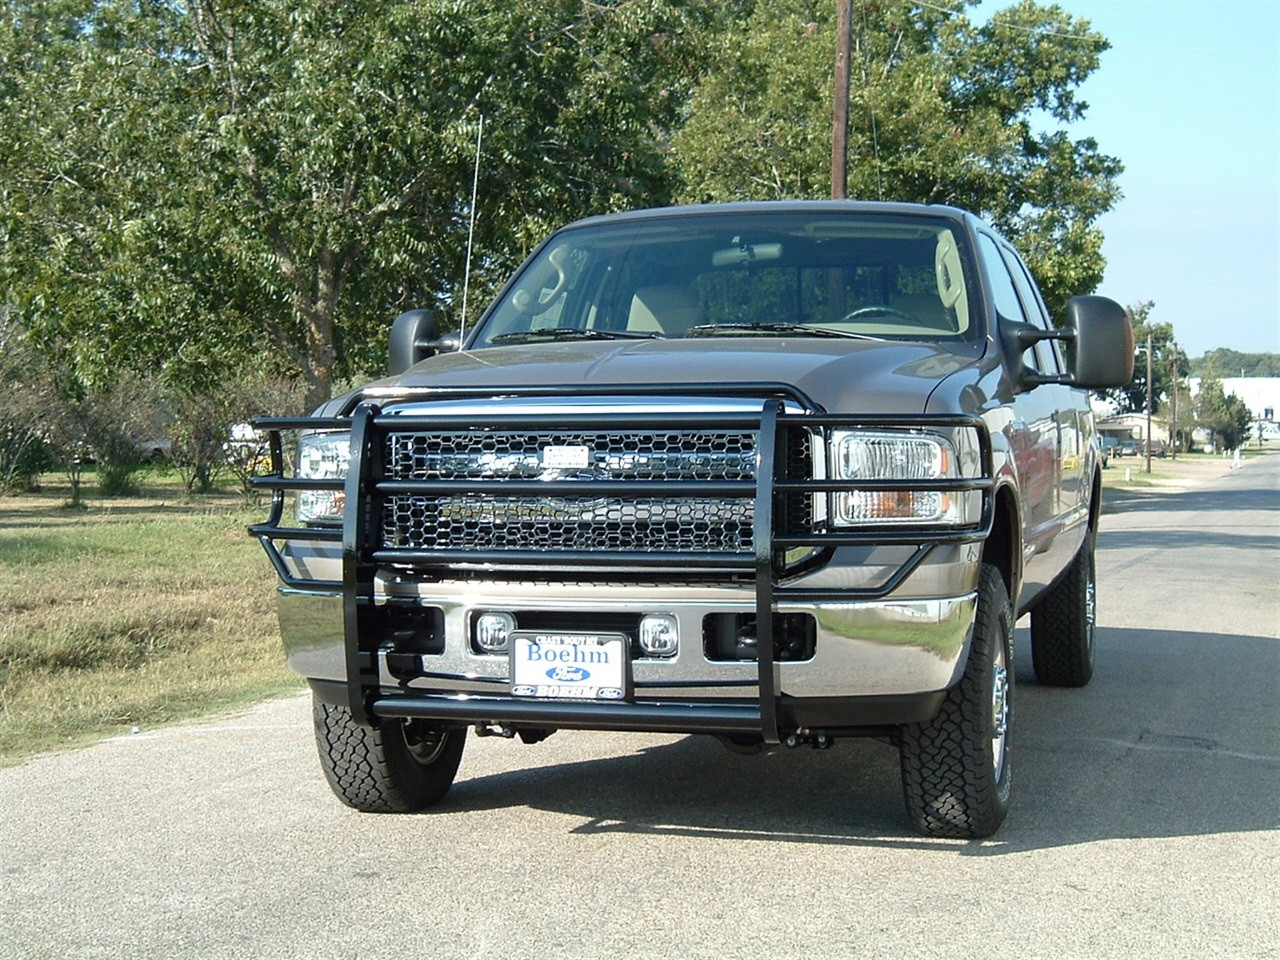 05-07 FORD SUPER DUTY/2005 EXCURSION LEGEND GRILLE GUARD